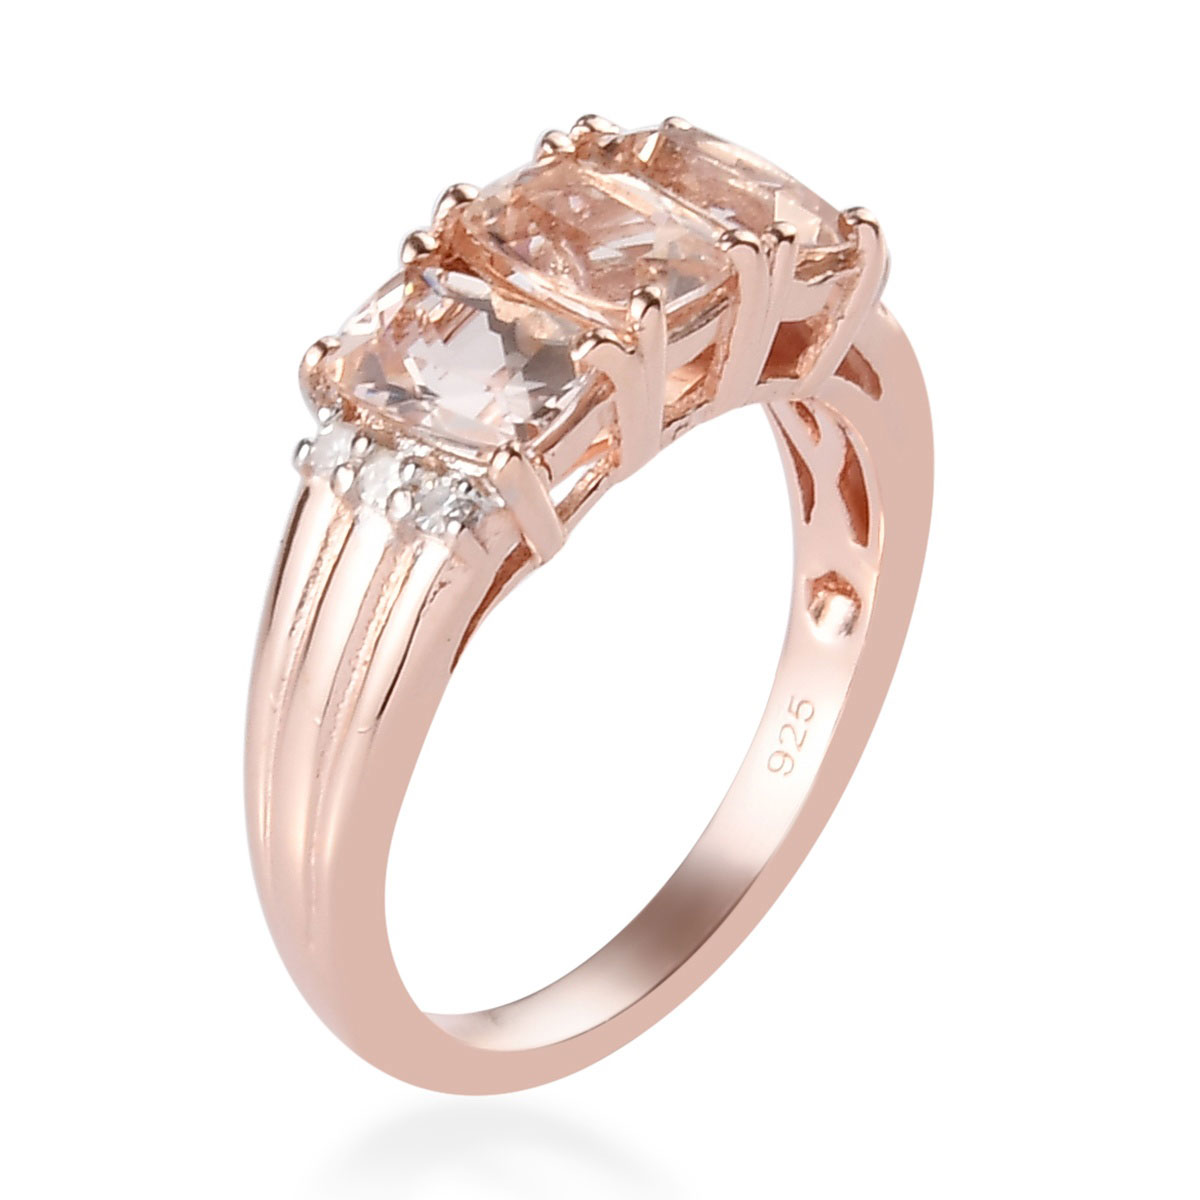 Marropino Morganite, Diamond Accent Ring in Vermeil RG Over Sterling Silver (Size 8.0) 1.44 ctw